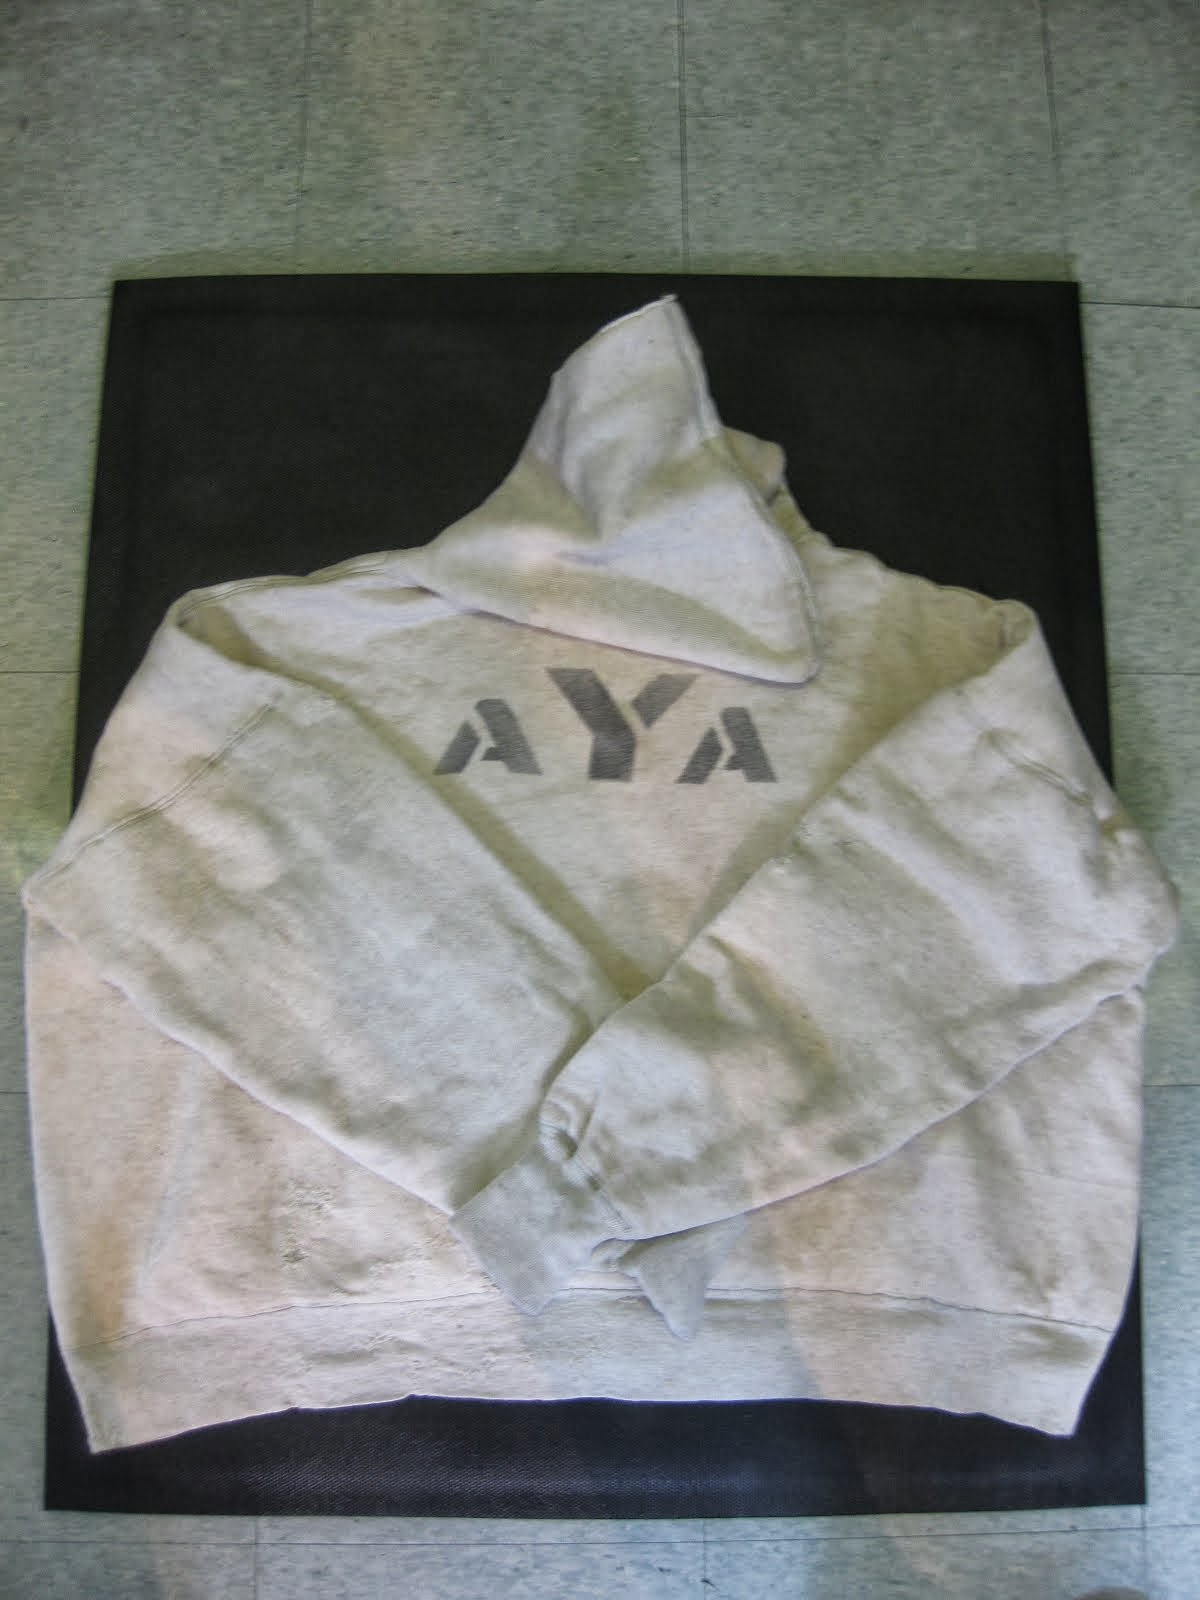 Yale university Athletic Association 「A Y A」 ステンシル入り